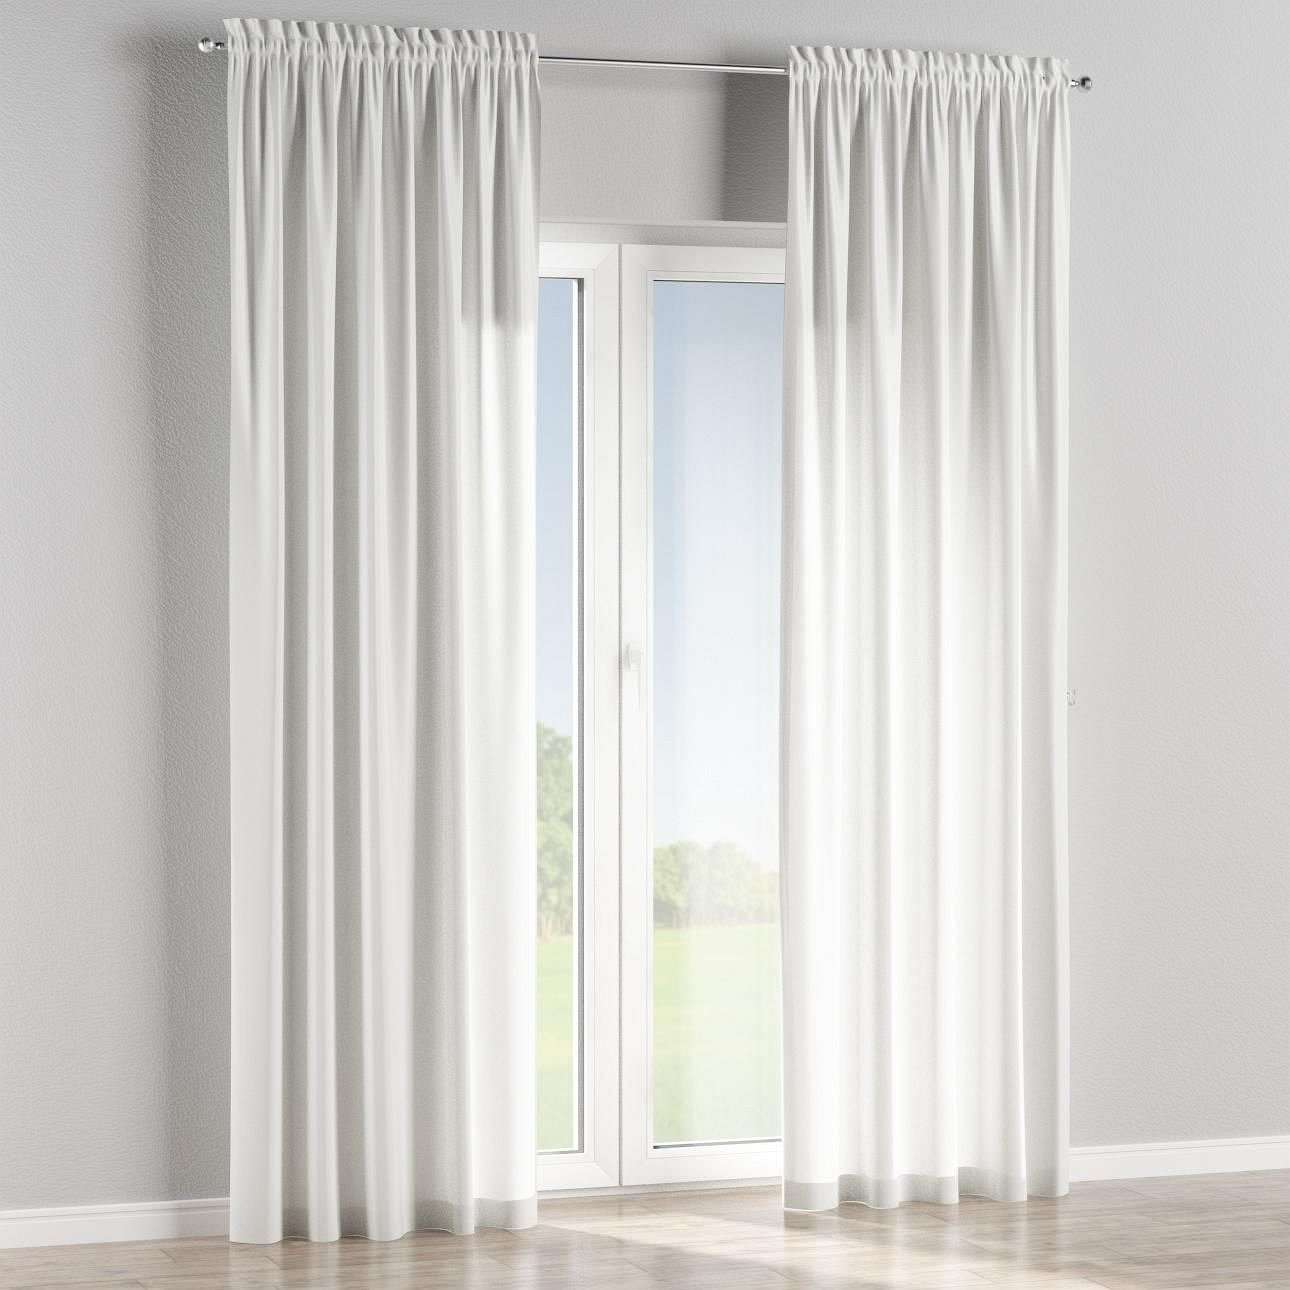 Slot and frill curtains in collection SALE, fabric: 120-07